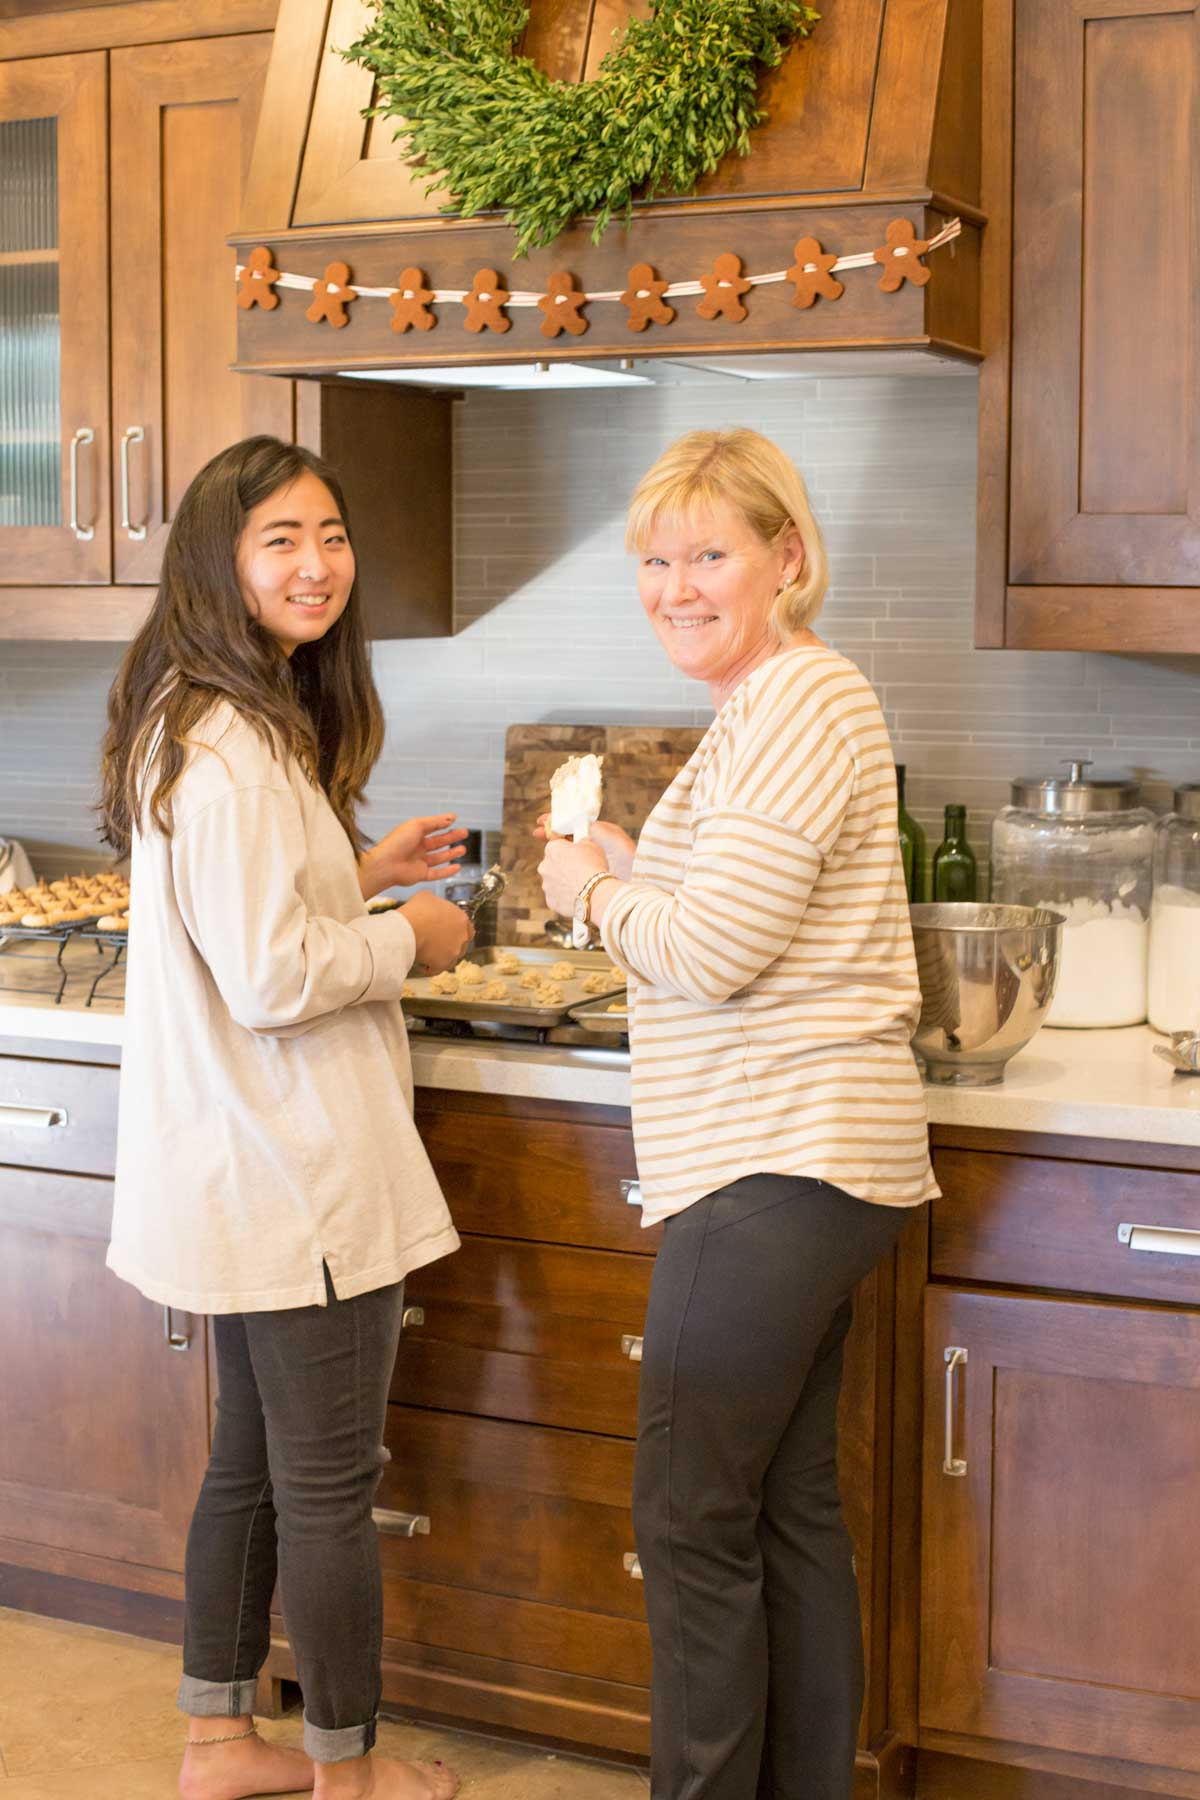 Two ladies in the kitchen making cookies.